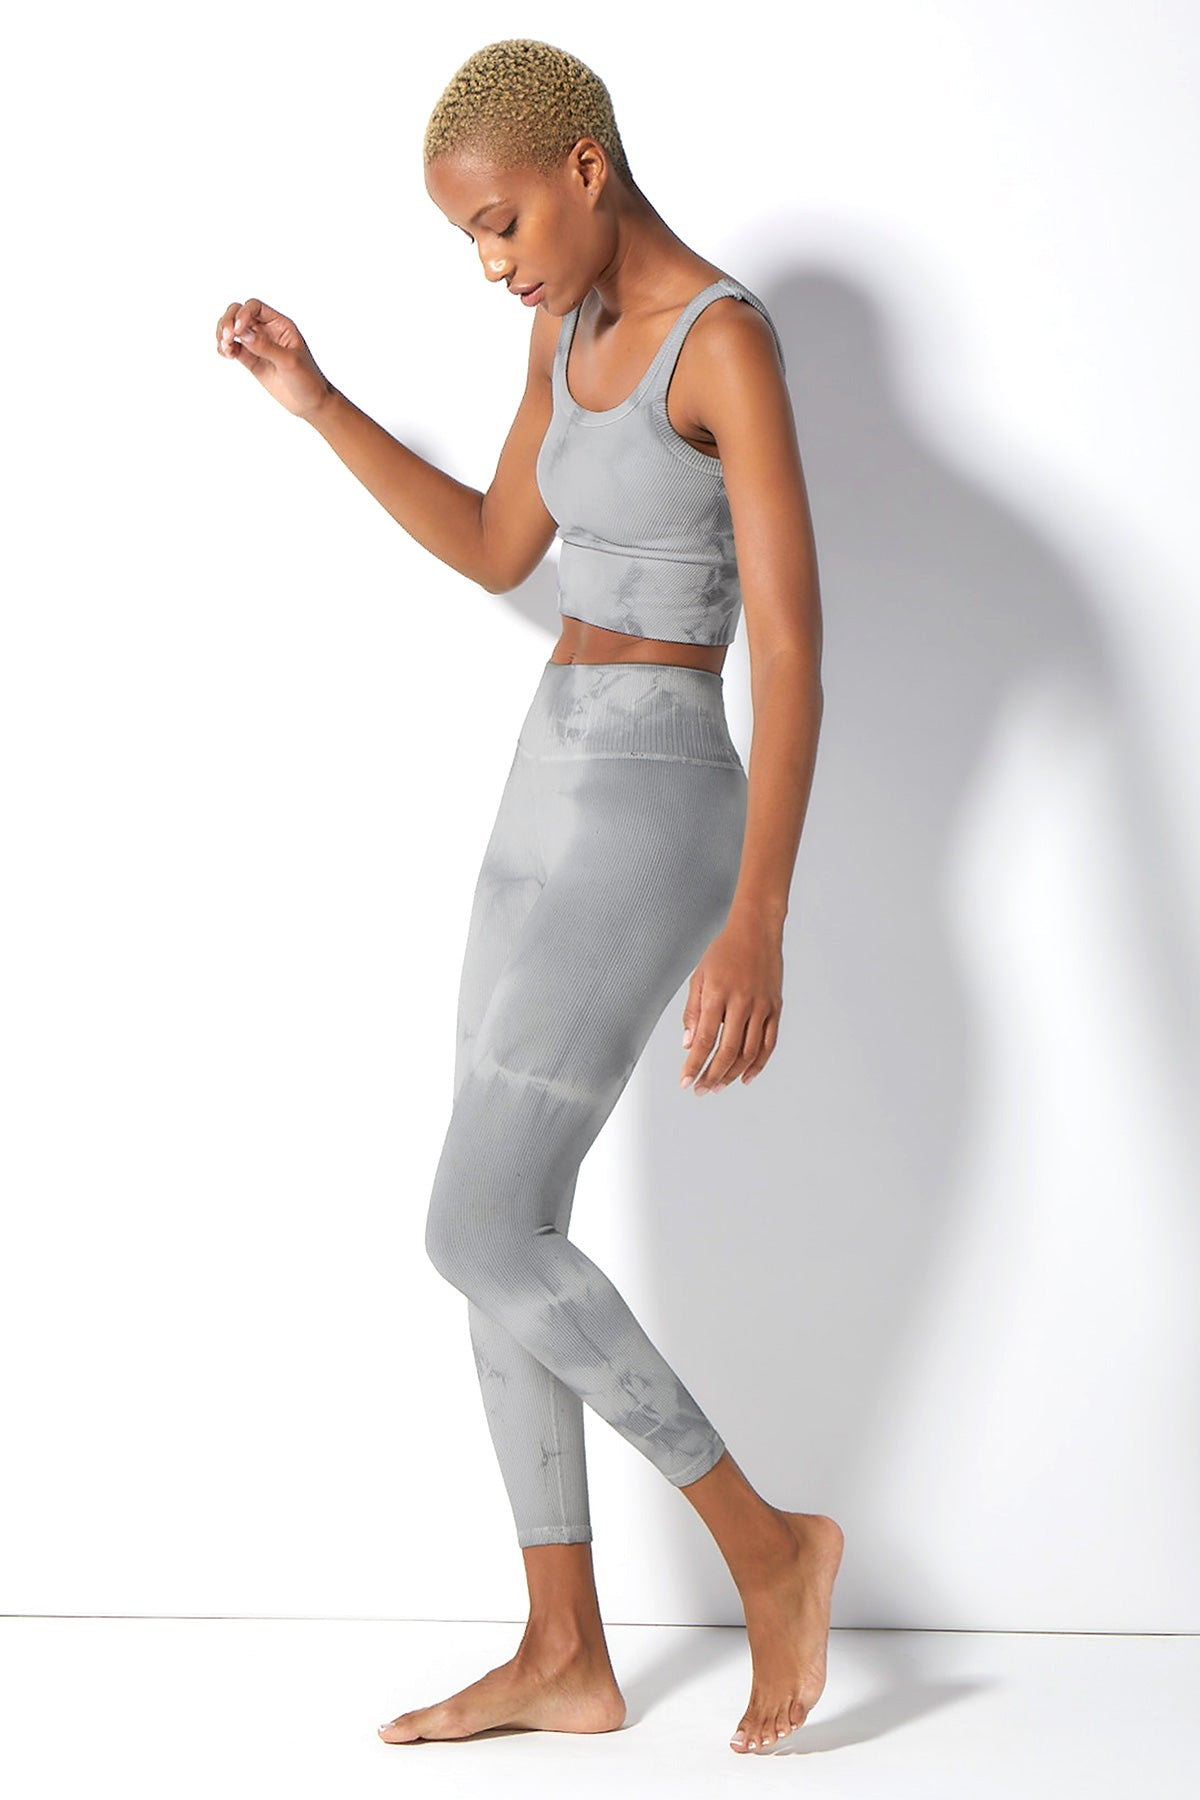 Haze Renee 7/8 Rib Legging in Tradewinds Haze